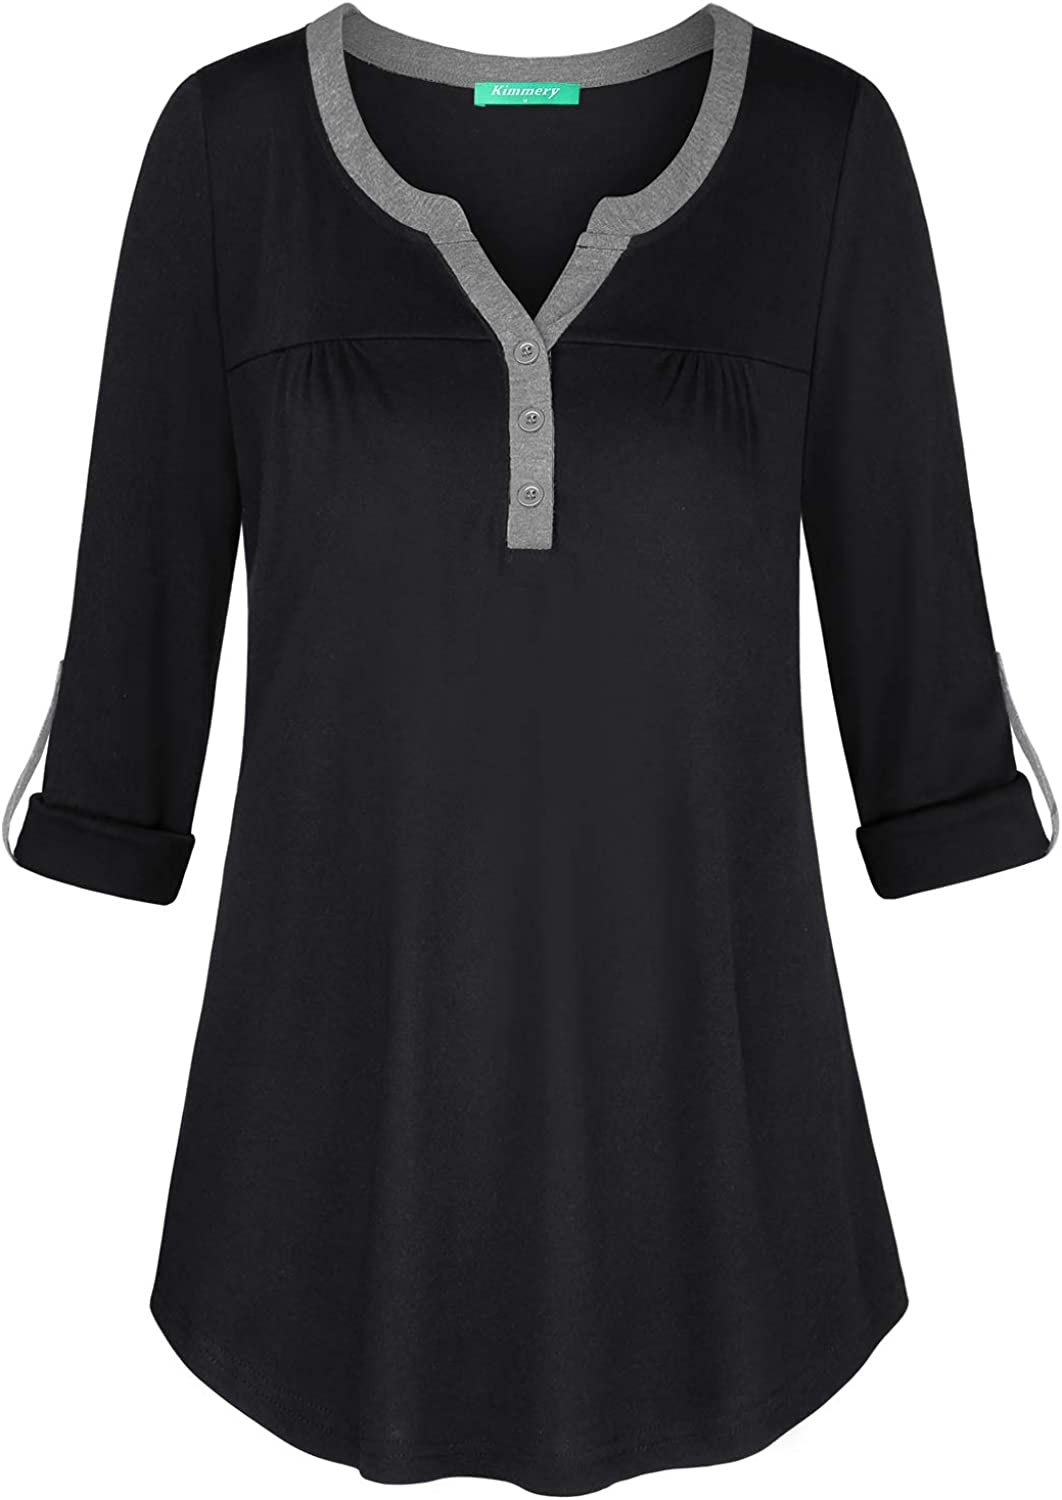 Kimmery Woman Henley Shirt Cuffed Sleeve Notch V Neck Casual Office Tunic Blouse